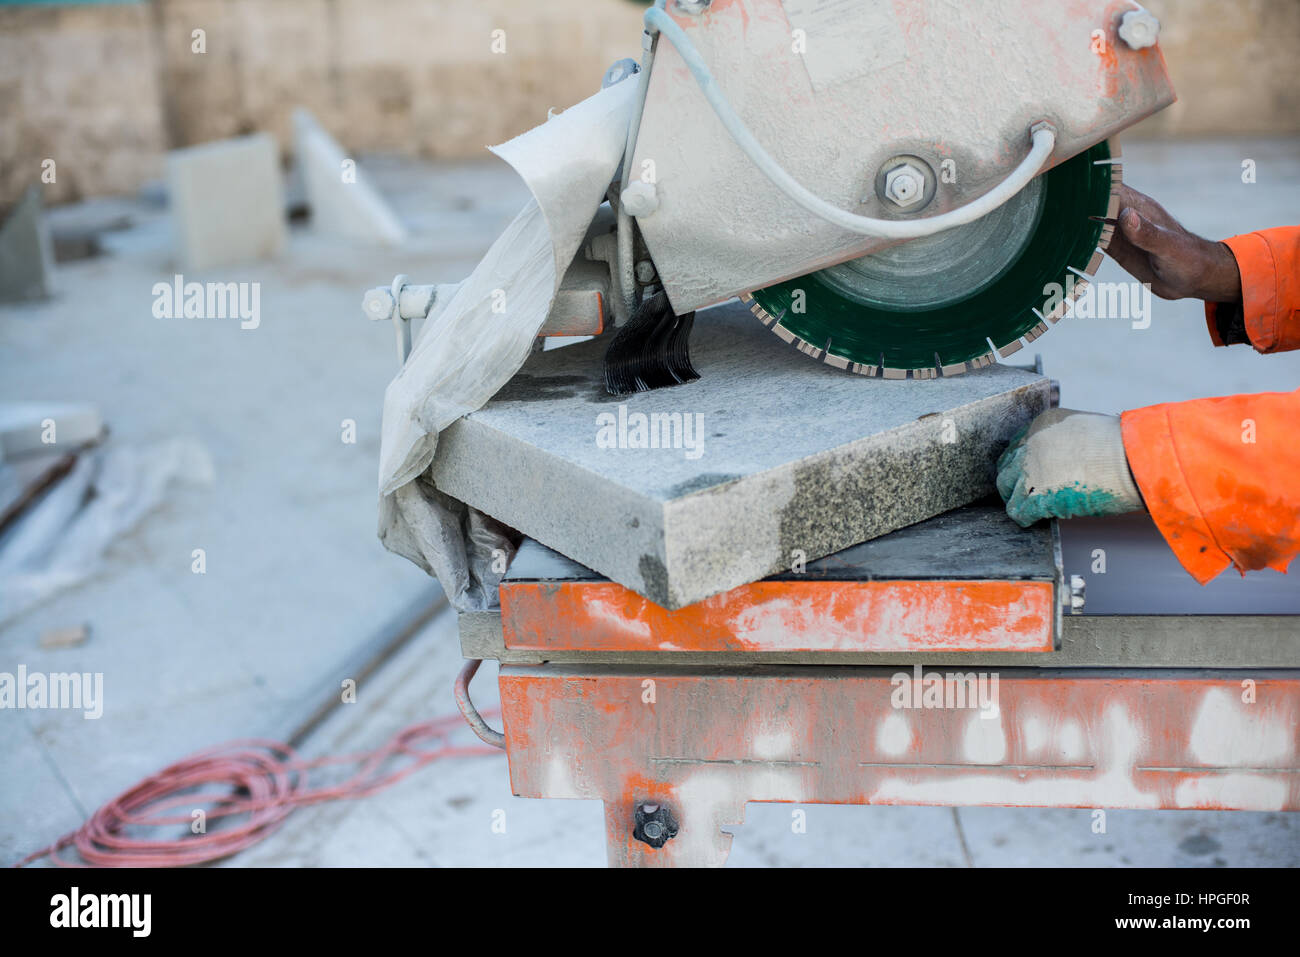 Machine has sharp blade which makes clean cut in stone or granite. It uses abrasive action to slice through material - Stock Image